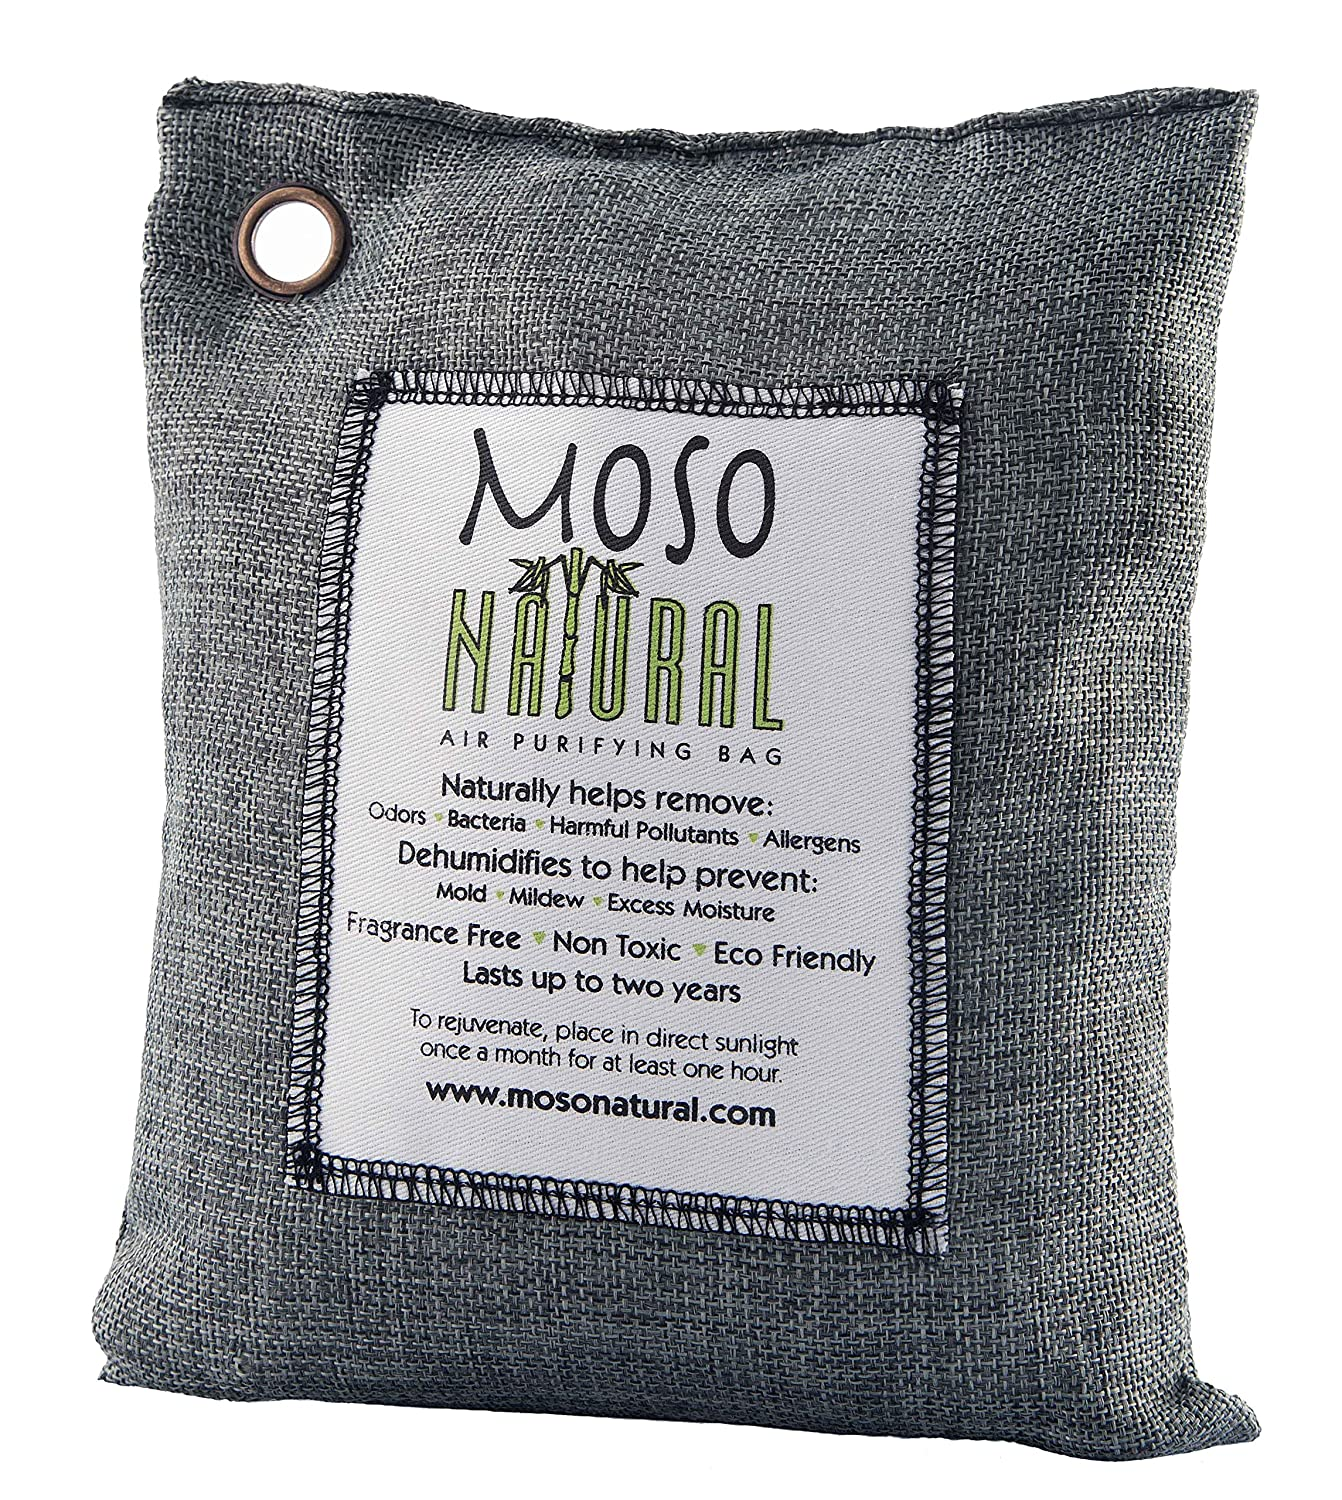 Moso Natural 500 gm Air Purifying Bag Deodorizer. Odor Eliminator for Kitchens, Living Areas, Bedrooms and Basements. Absorbs and Eliminates Odors. Charcoal Color MB8720